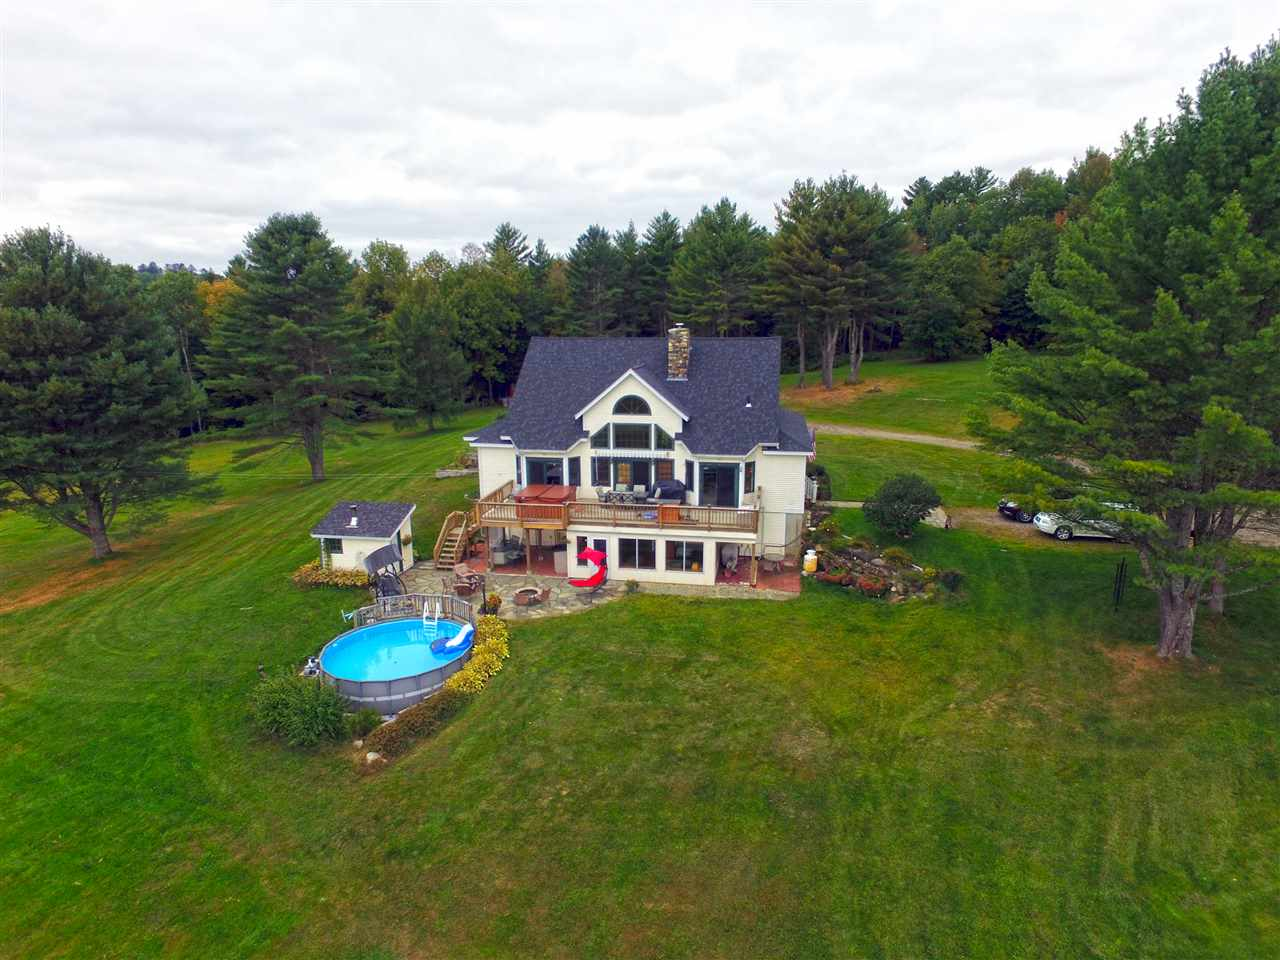 Danville VT Horse Farm | Property  on Private Man-Made Pond